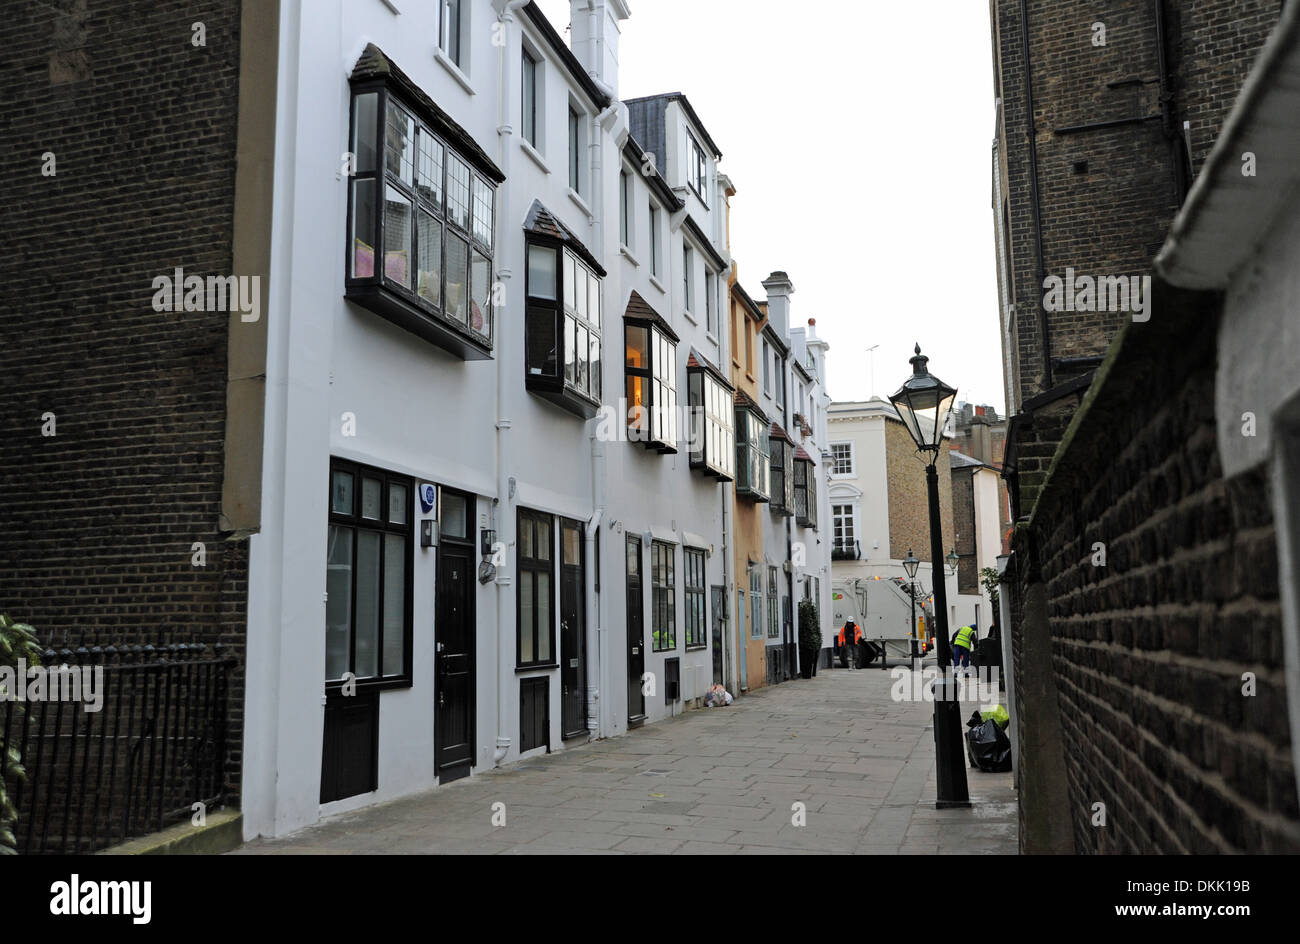 Old cottages in the Royal Borough of Kensington and Chelsea London W8 UK Photograph taken by Simon Dack Stock Photo